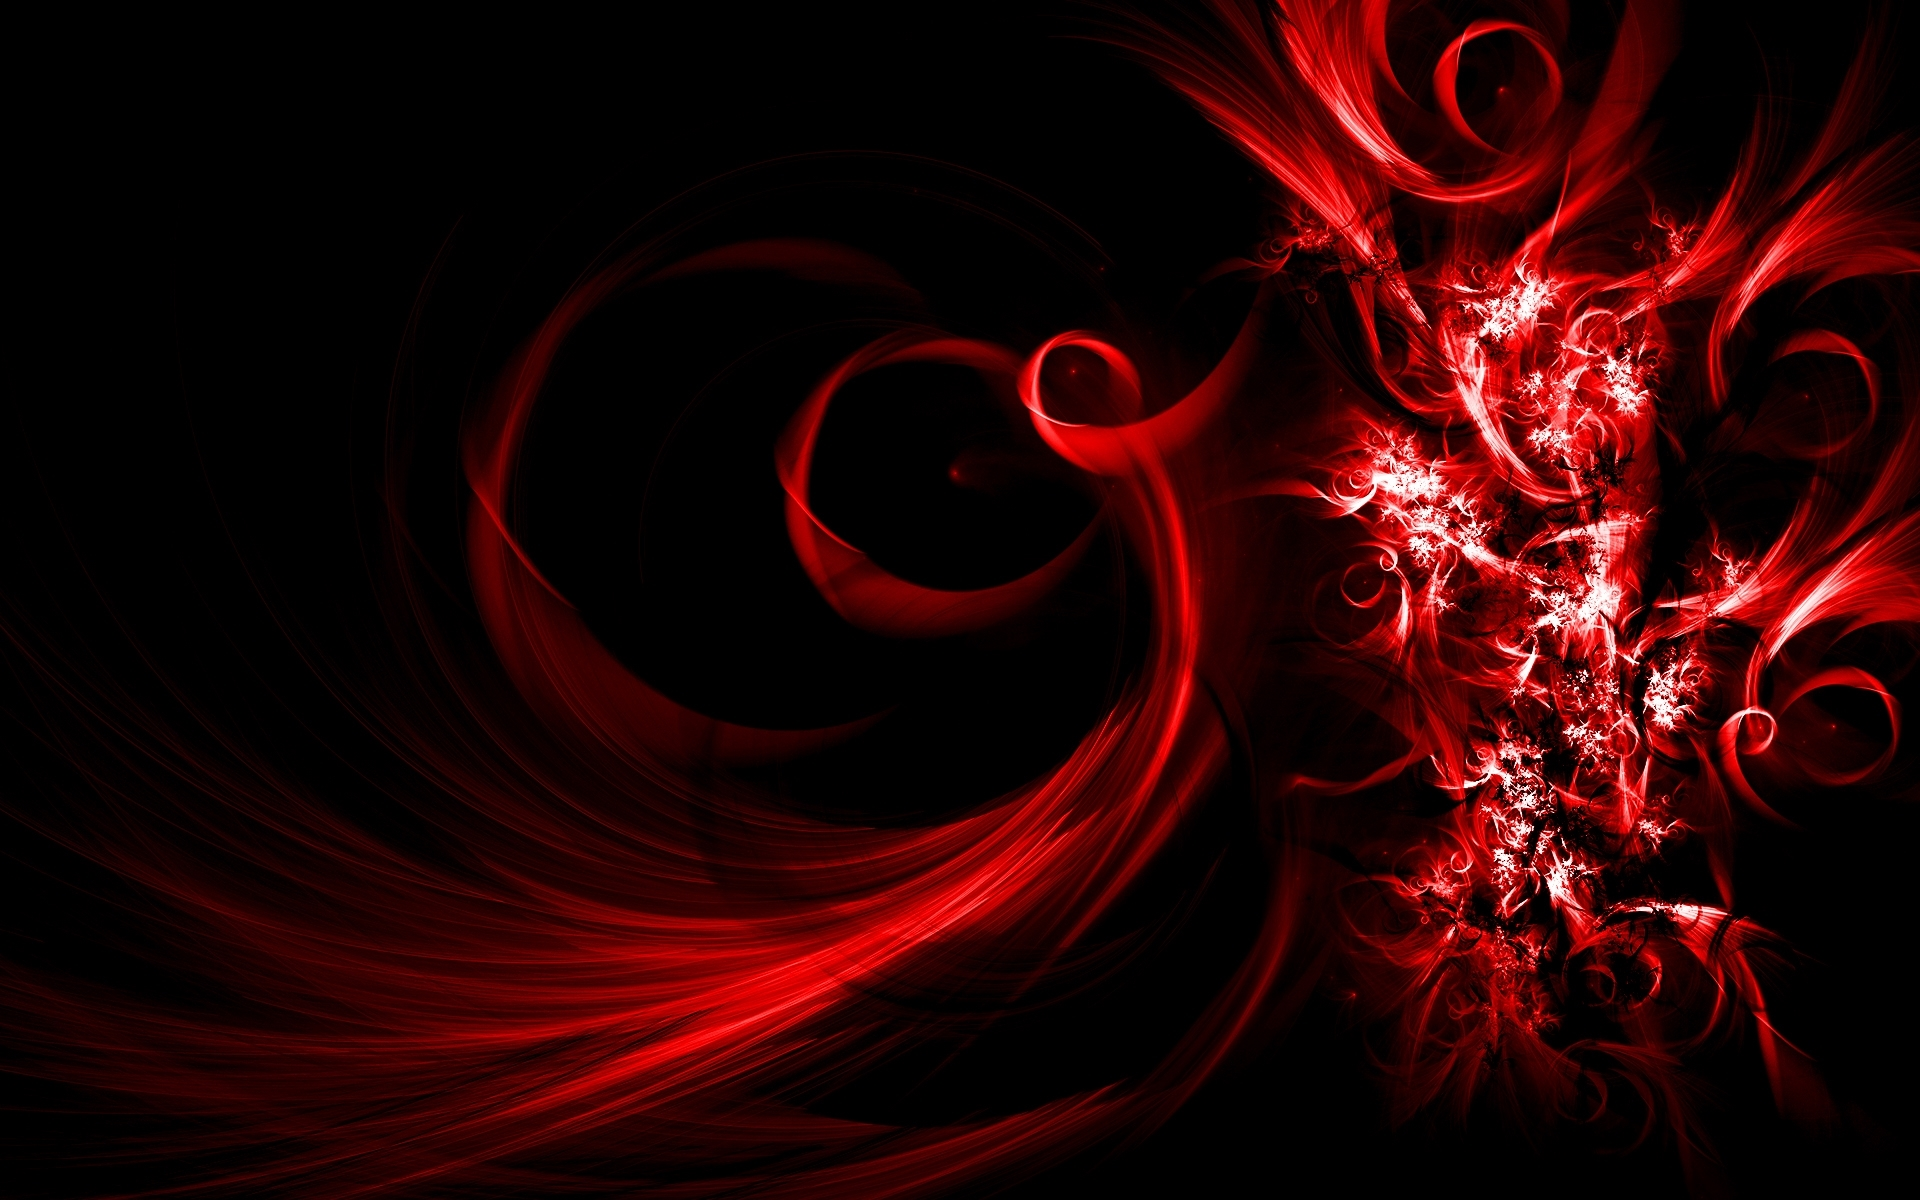 red abstract widescreen